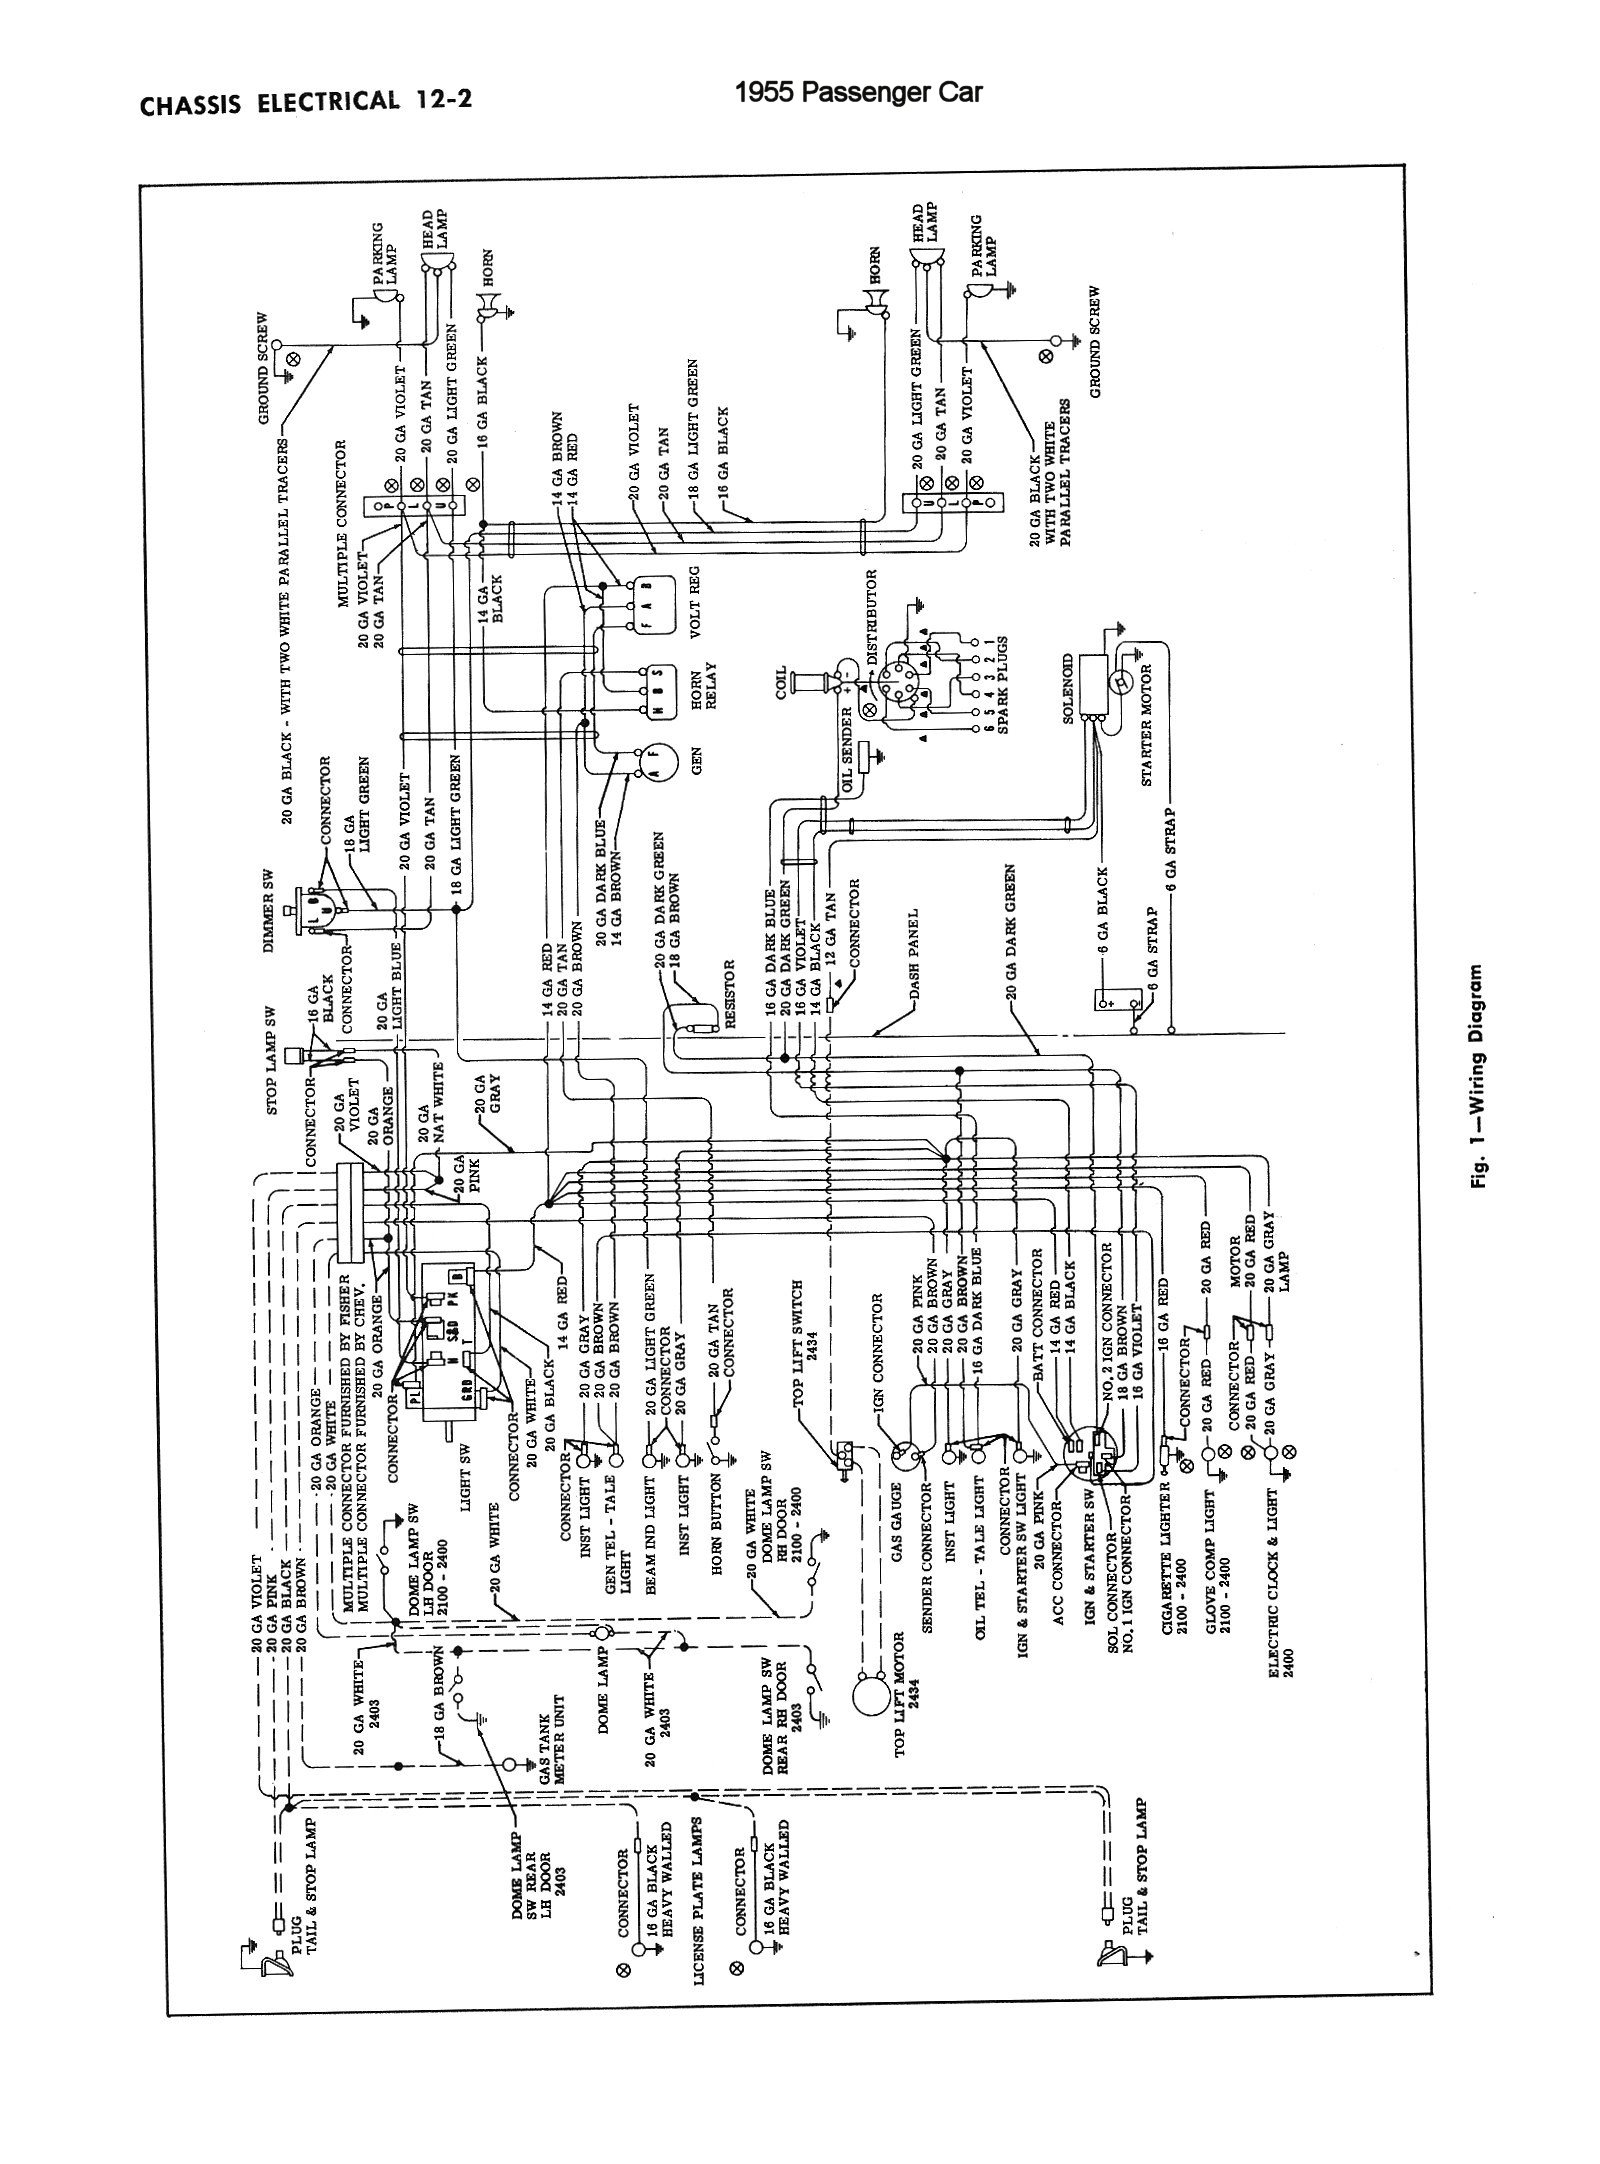 Chevy Wiring Diagrams Basic Electrical Click On The Diagram To See 1955 Car Chassis